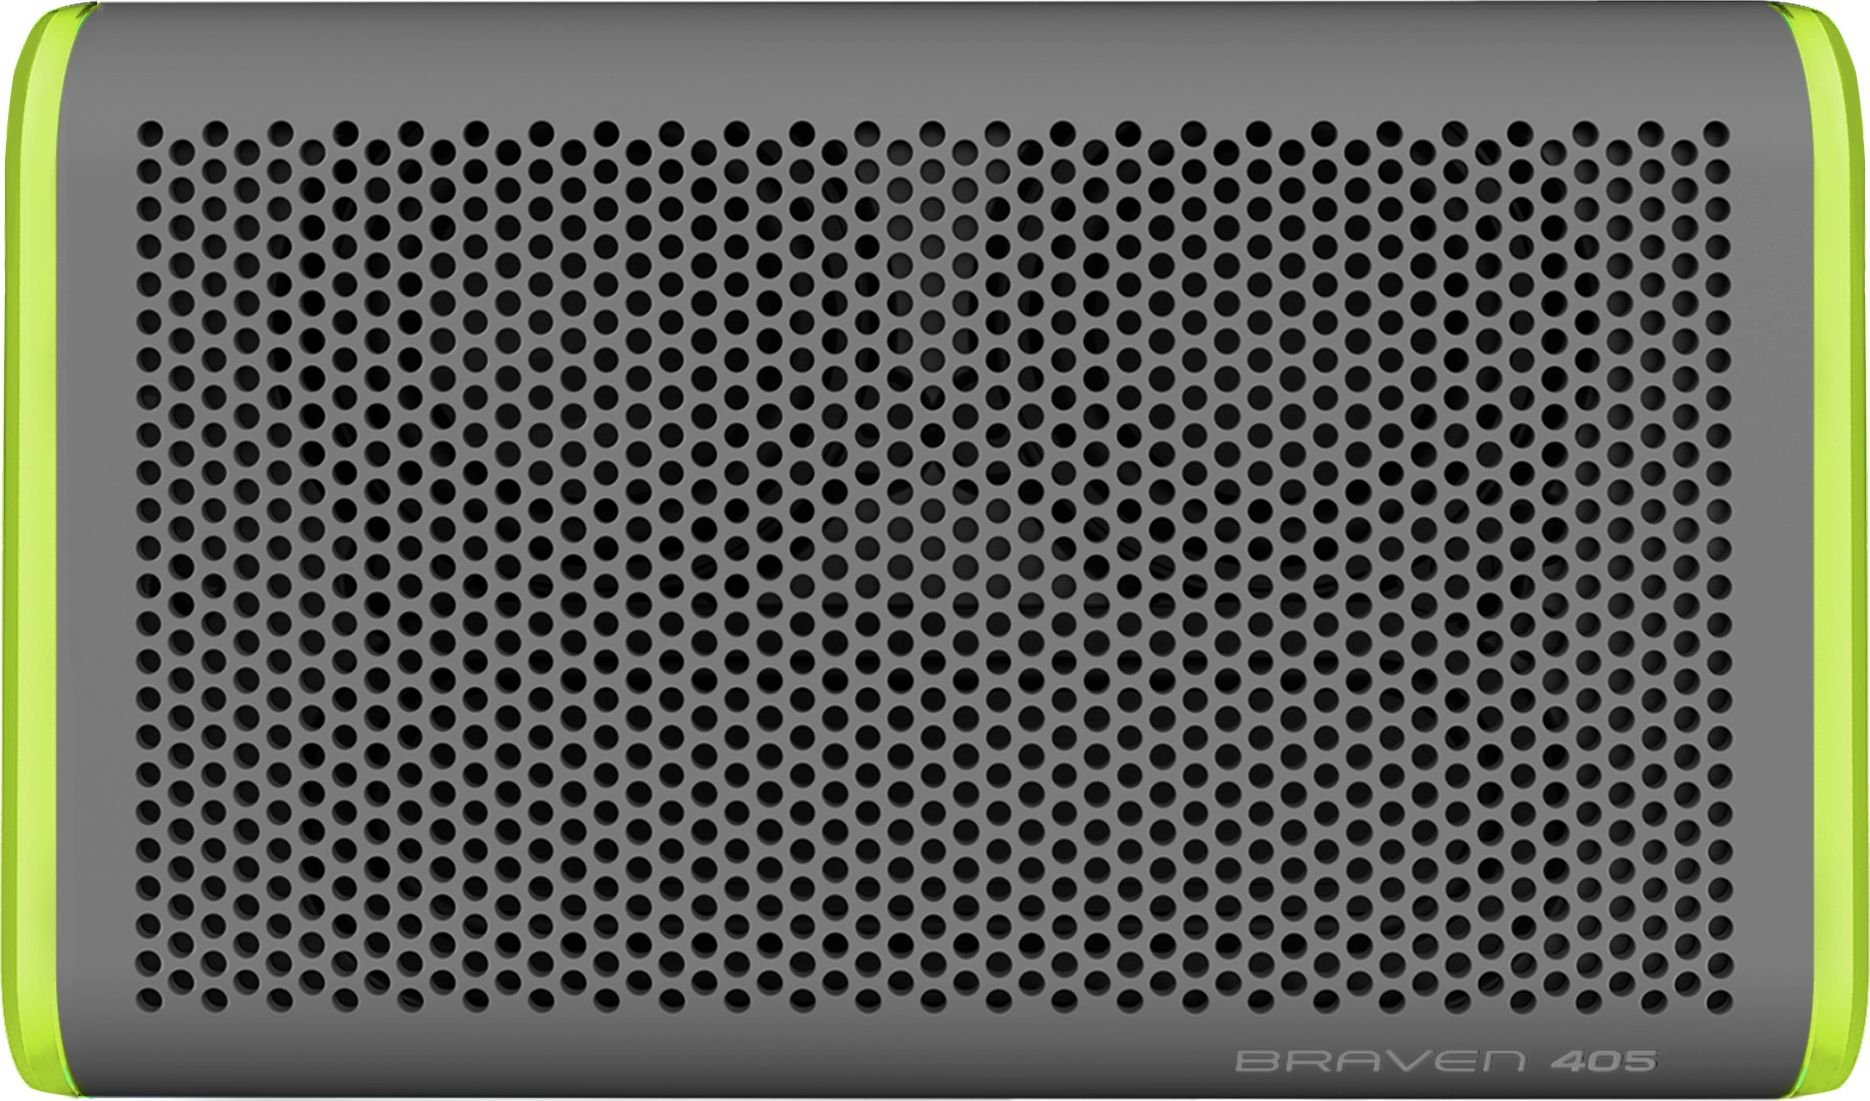 Braven 405 Wireless Portable Bluetooth Speaker...